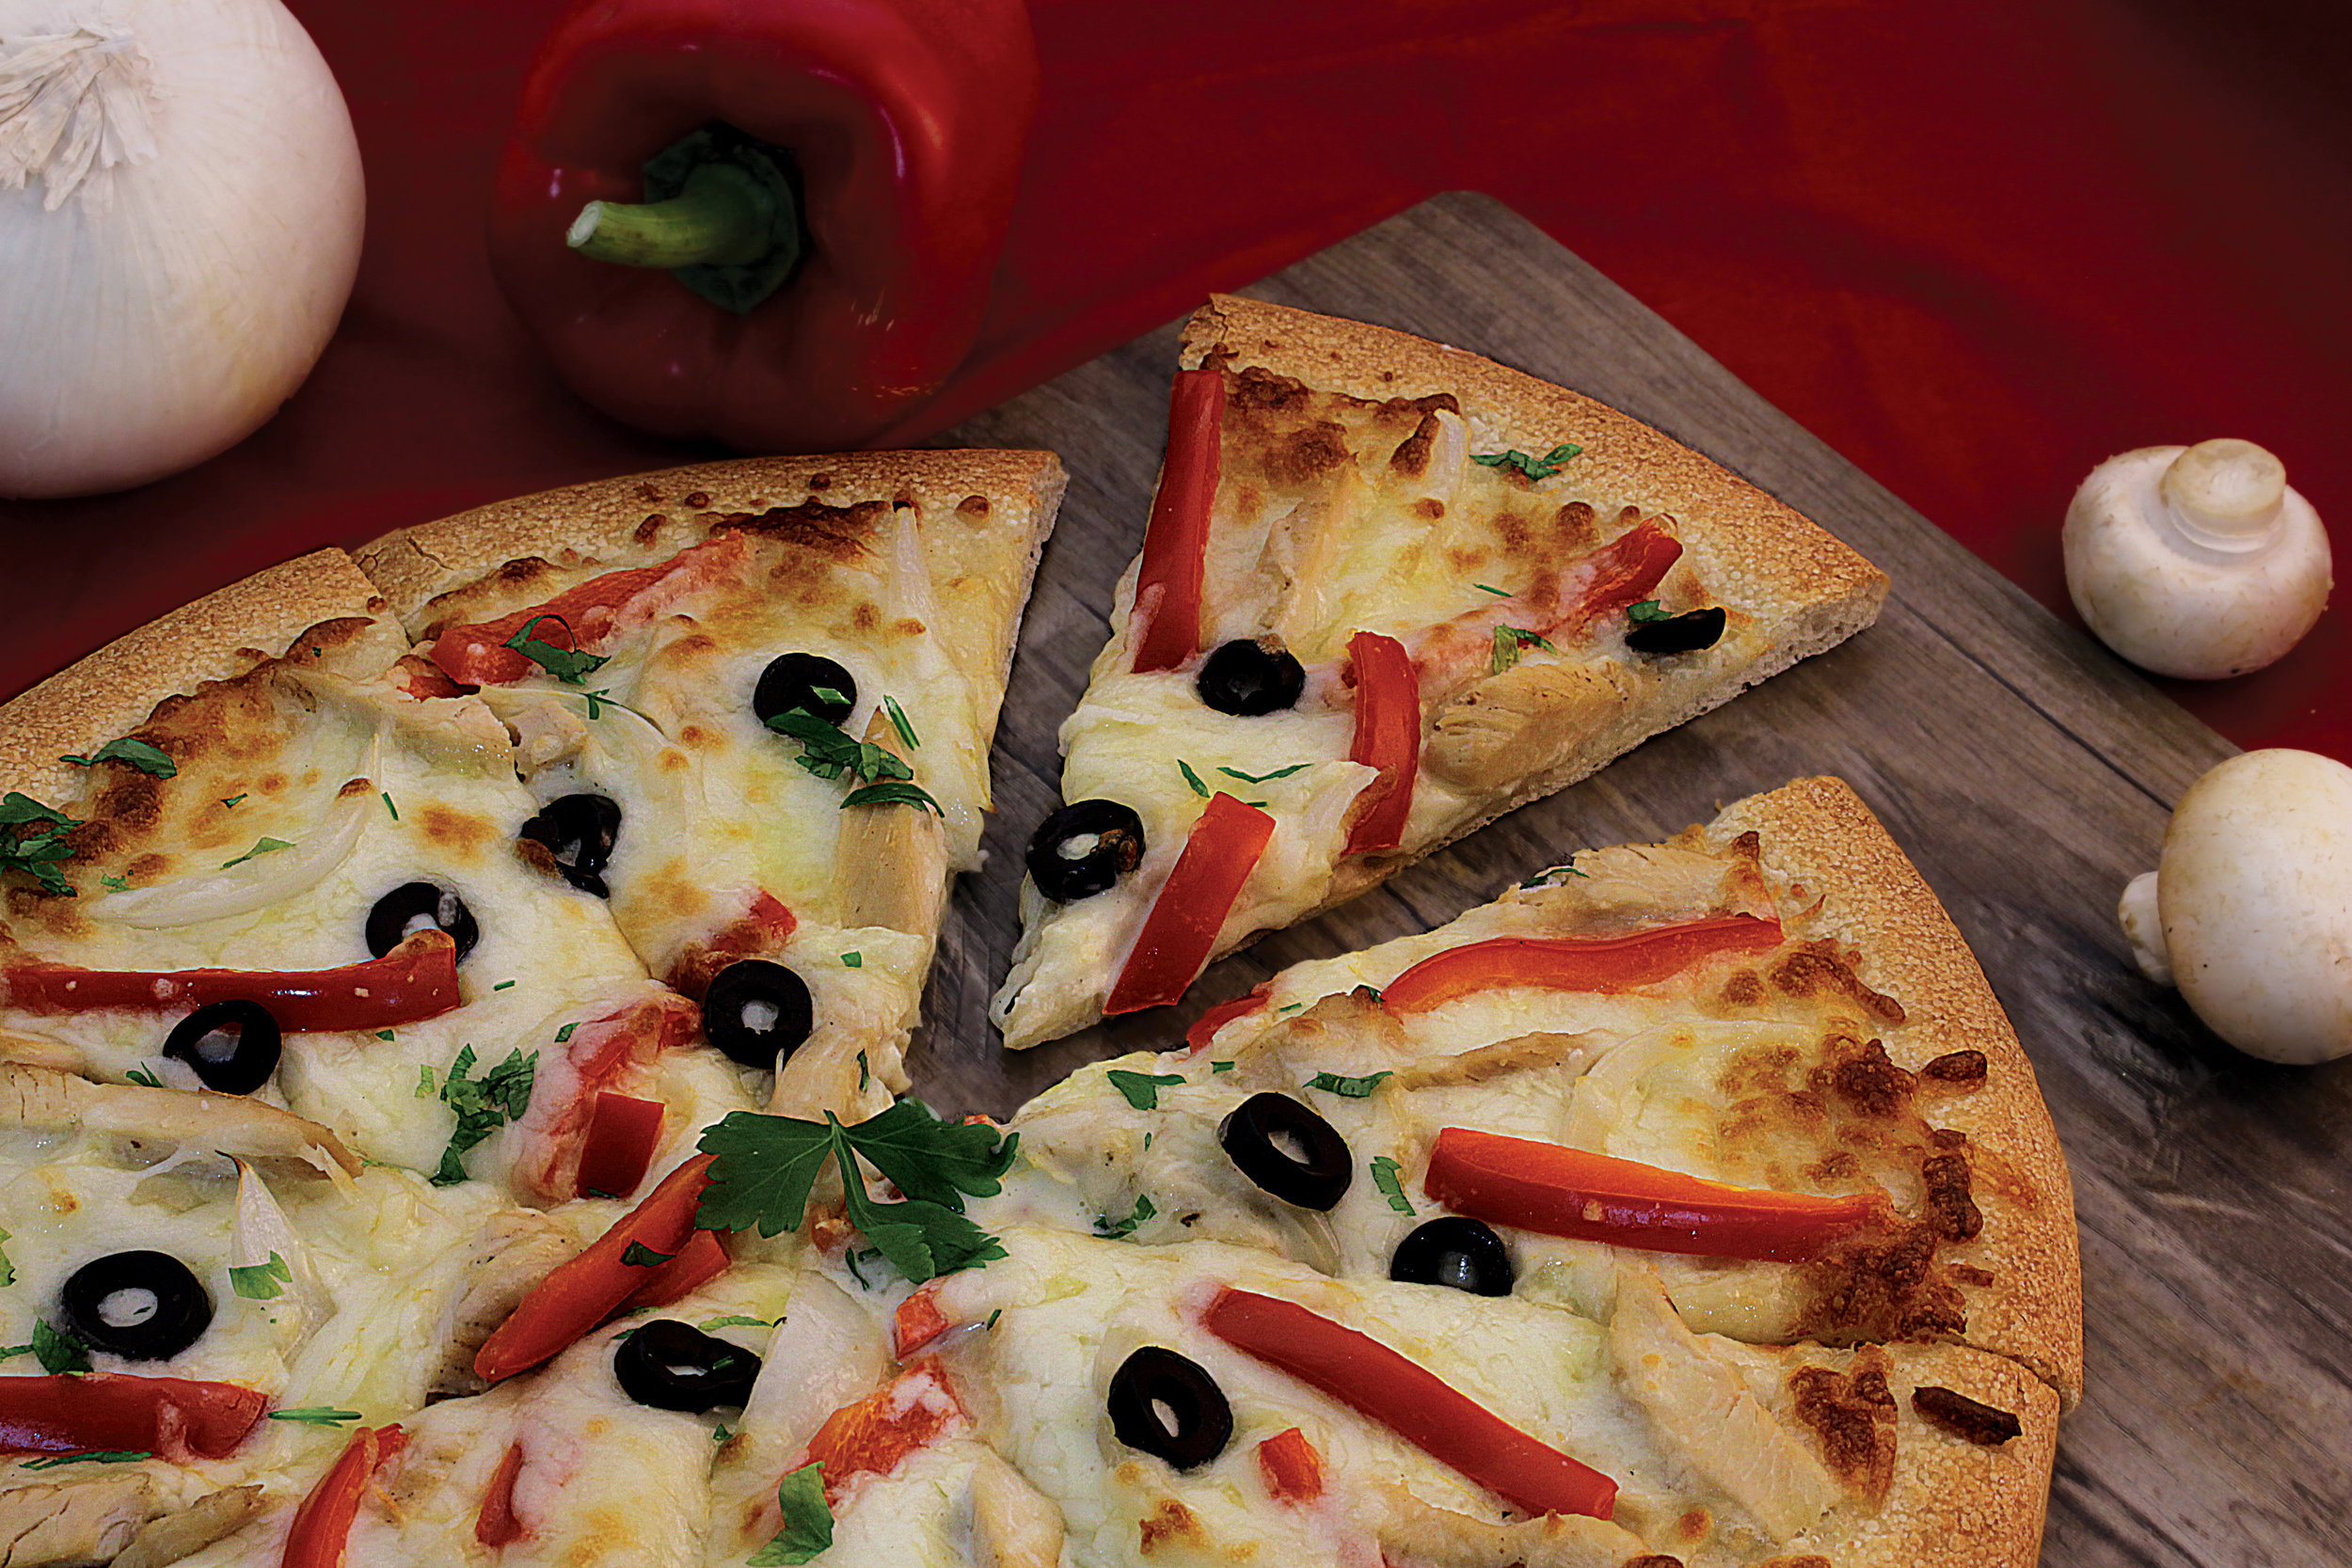 Chicken Alfredo Pizza                       45/55   Freshly homemade dough topped with   chicken, onion, red capsicum, black olives & melted mozzarella cheese & alfredo s  auce